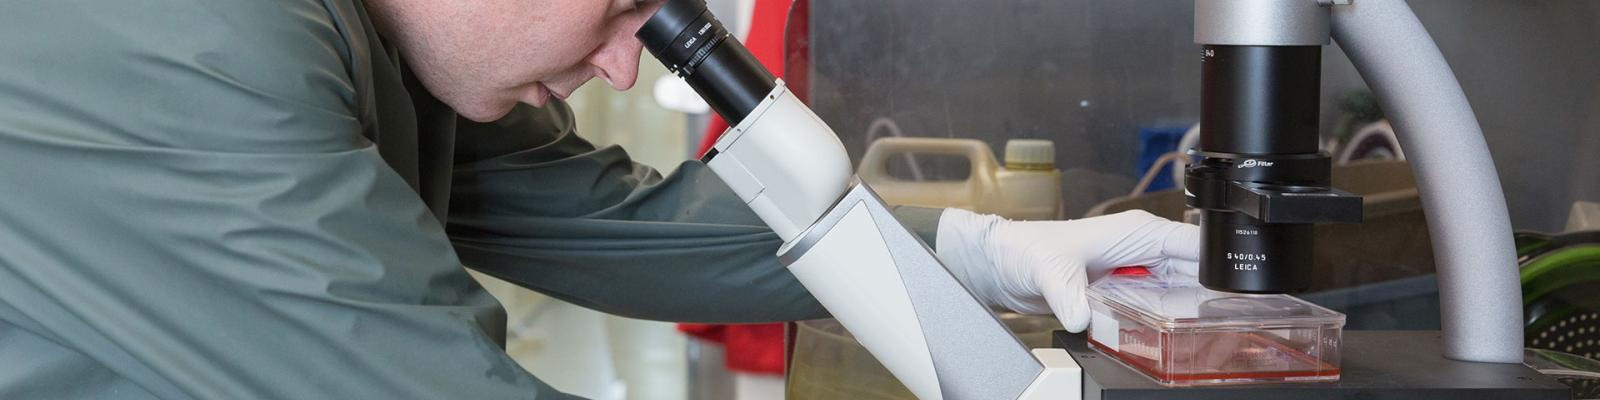 Man looking microscope at bench in lab